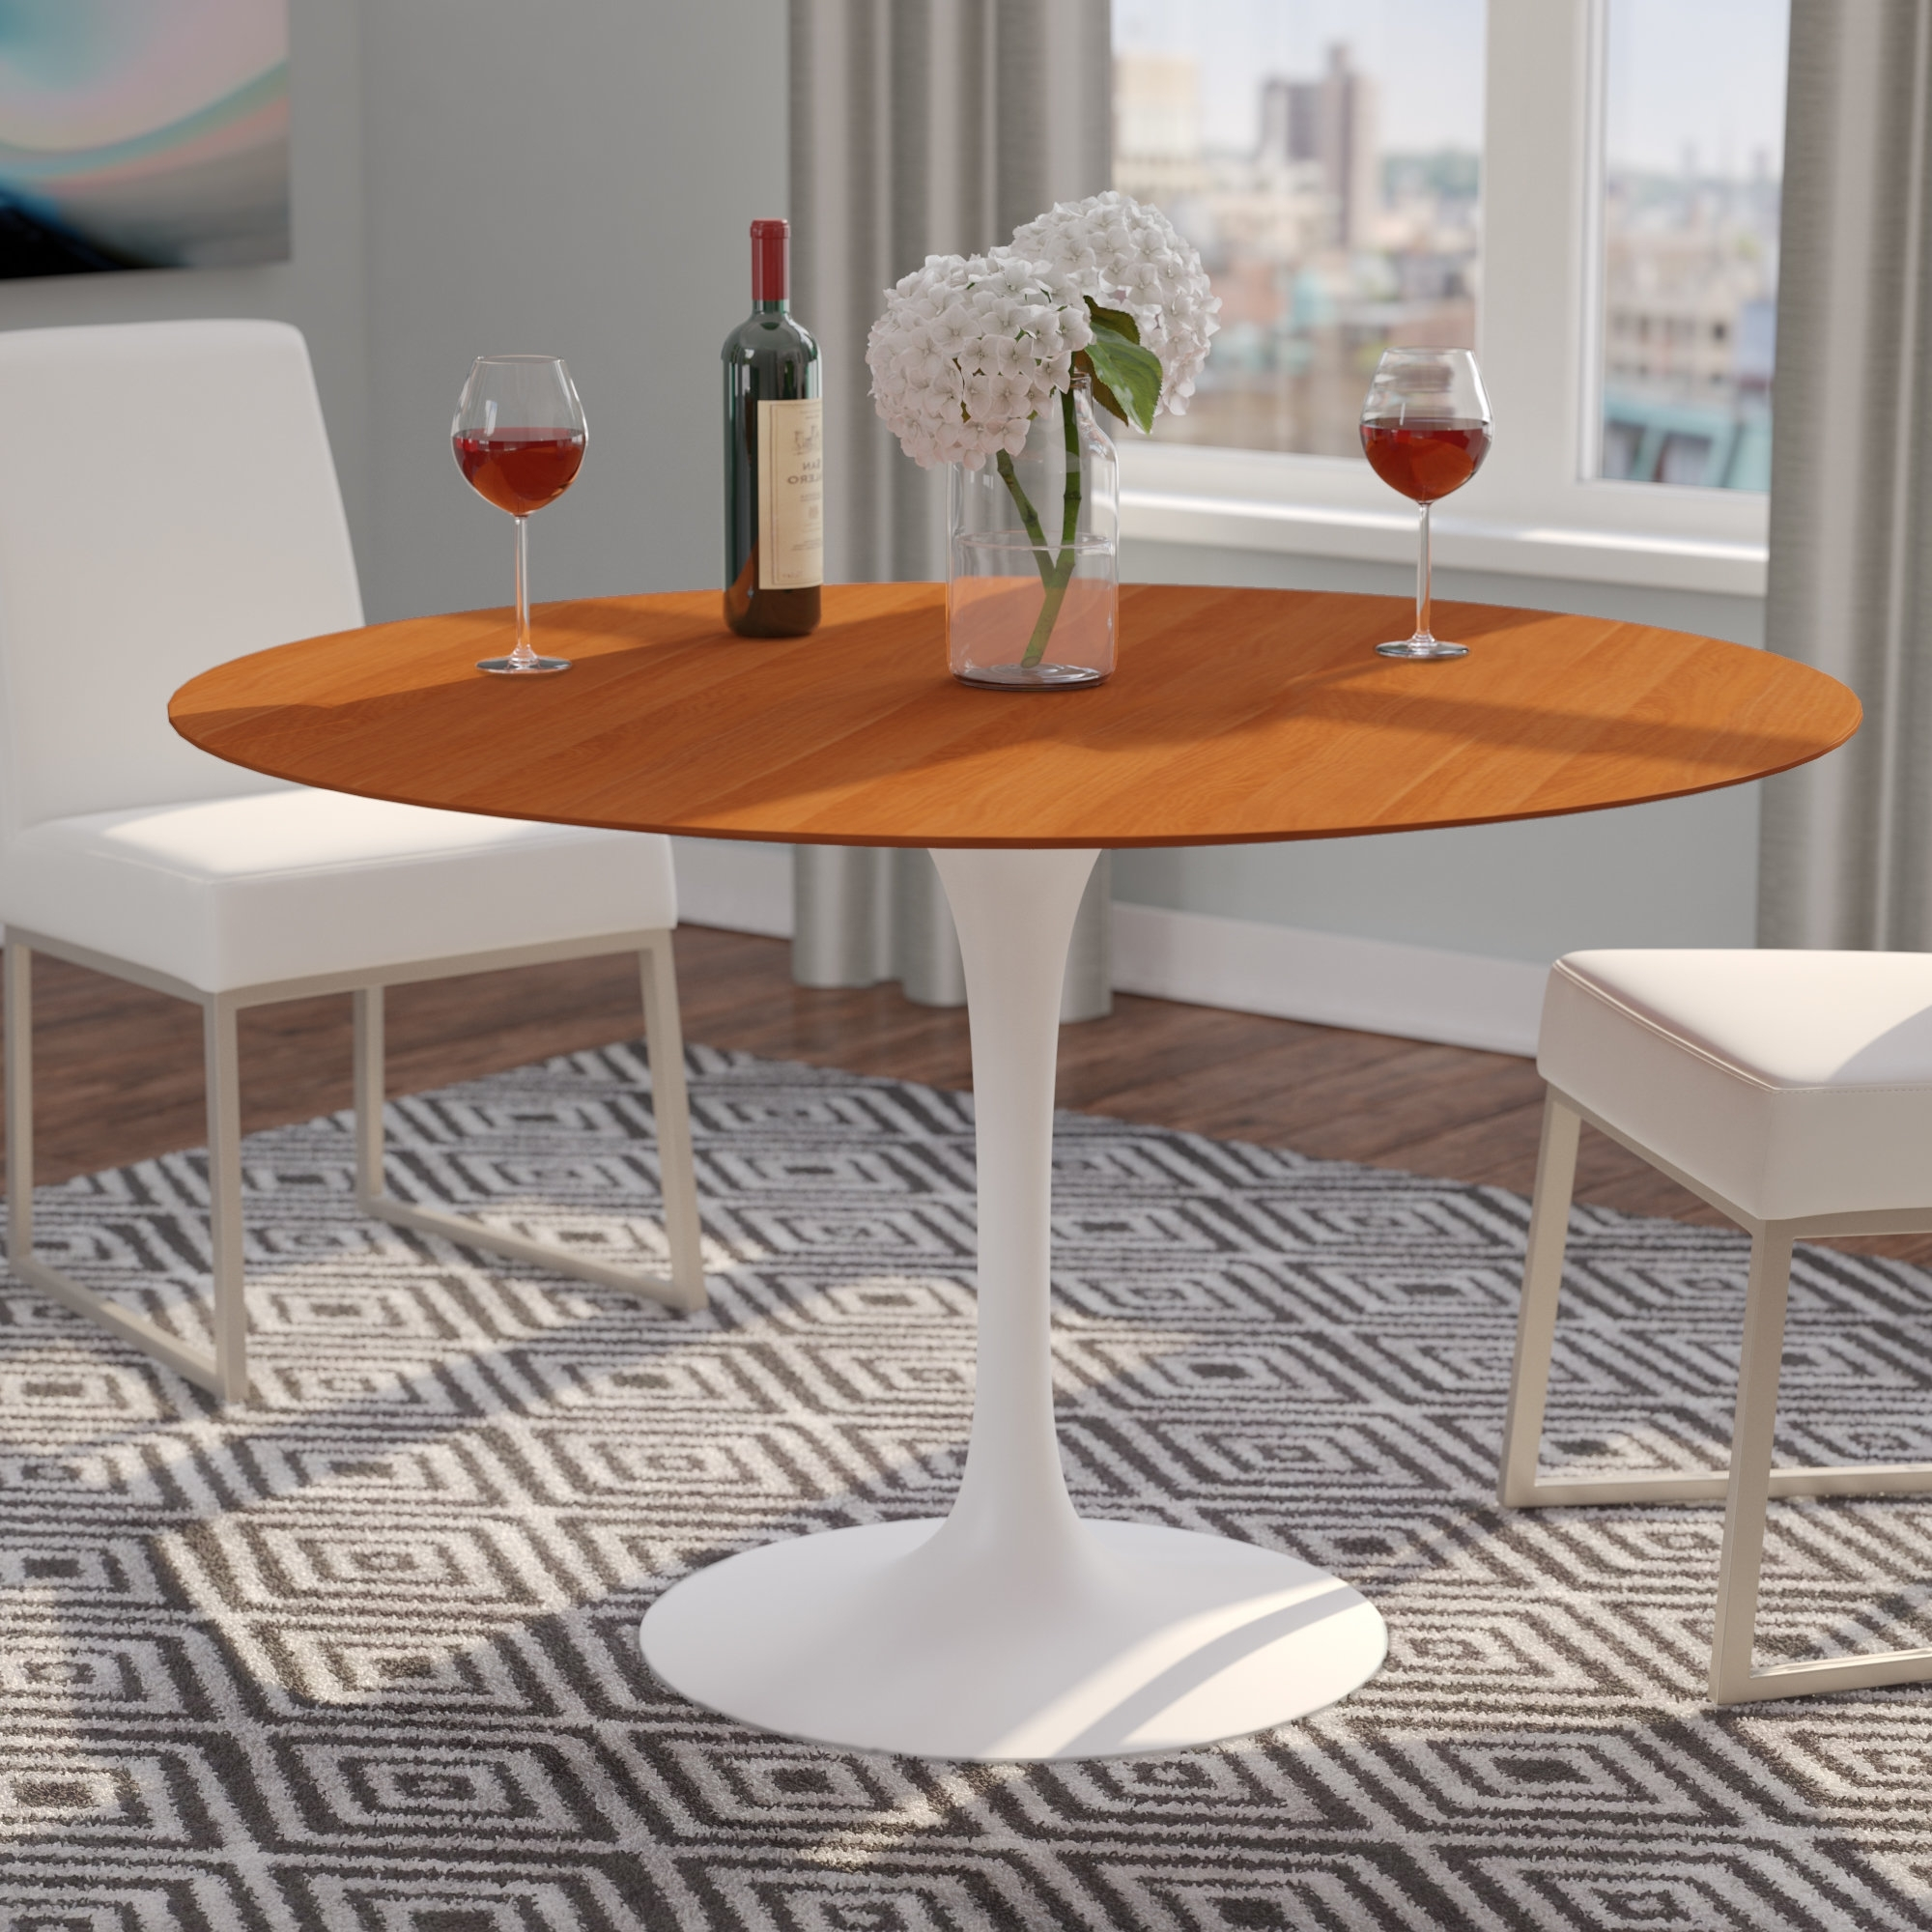 Wayfair Pertaining To Jefferson Extension Round Dining Tables (View 25 of 25)